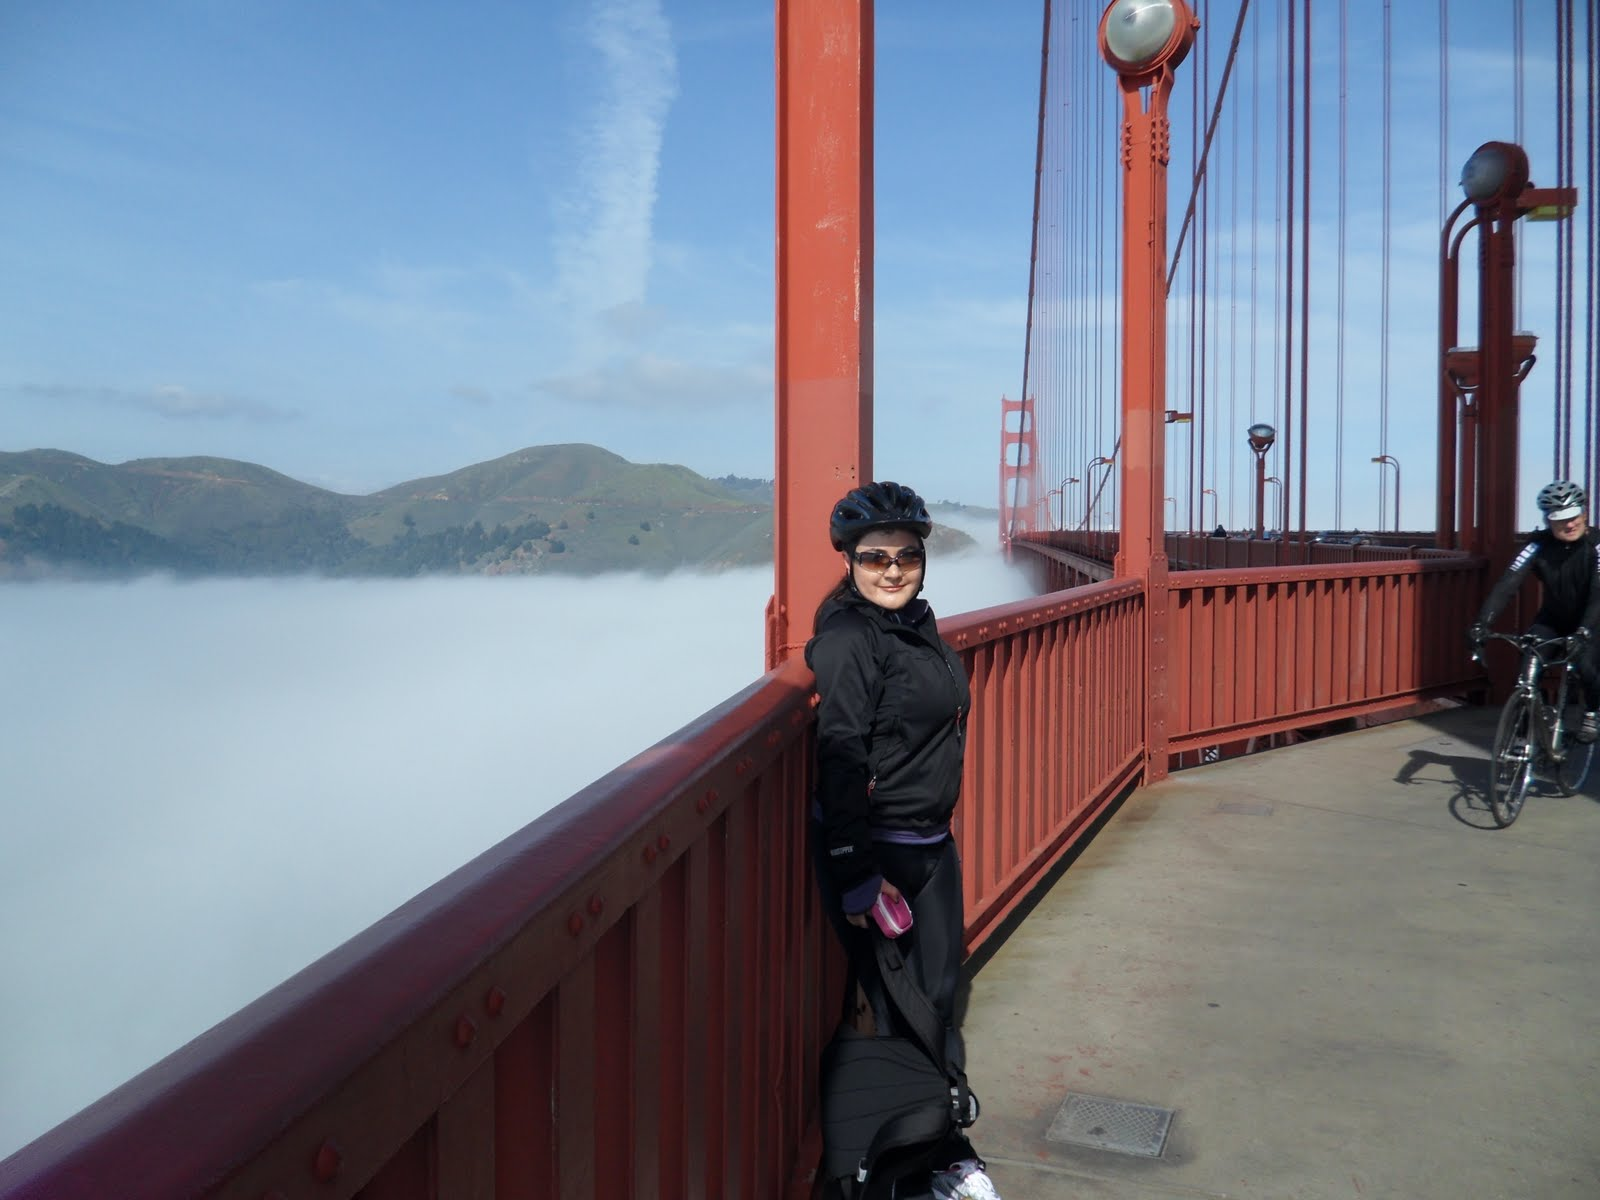 Golden Gate Bridge Bike Path We Like To Bike